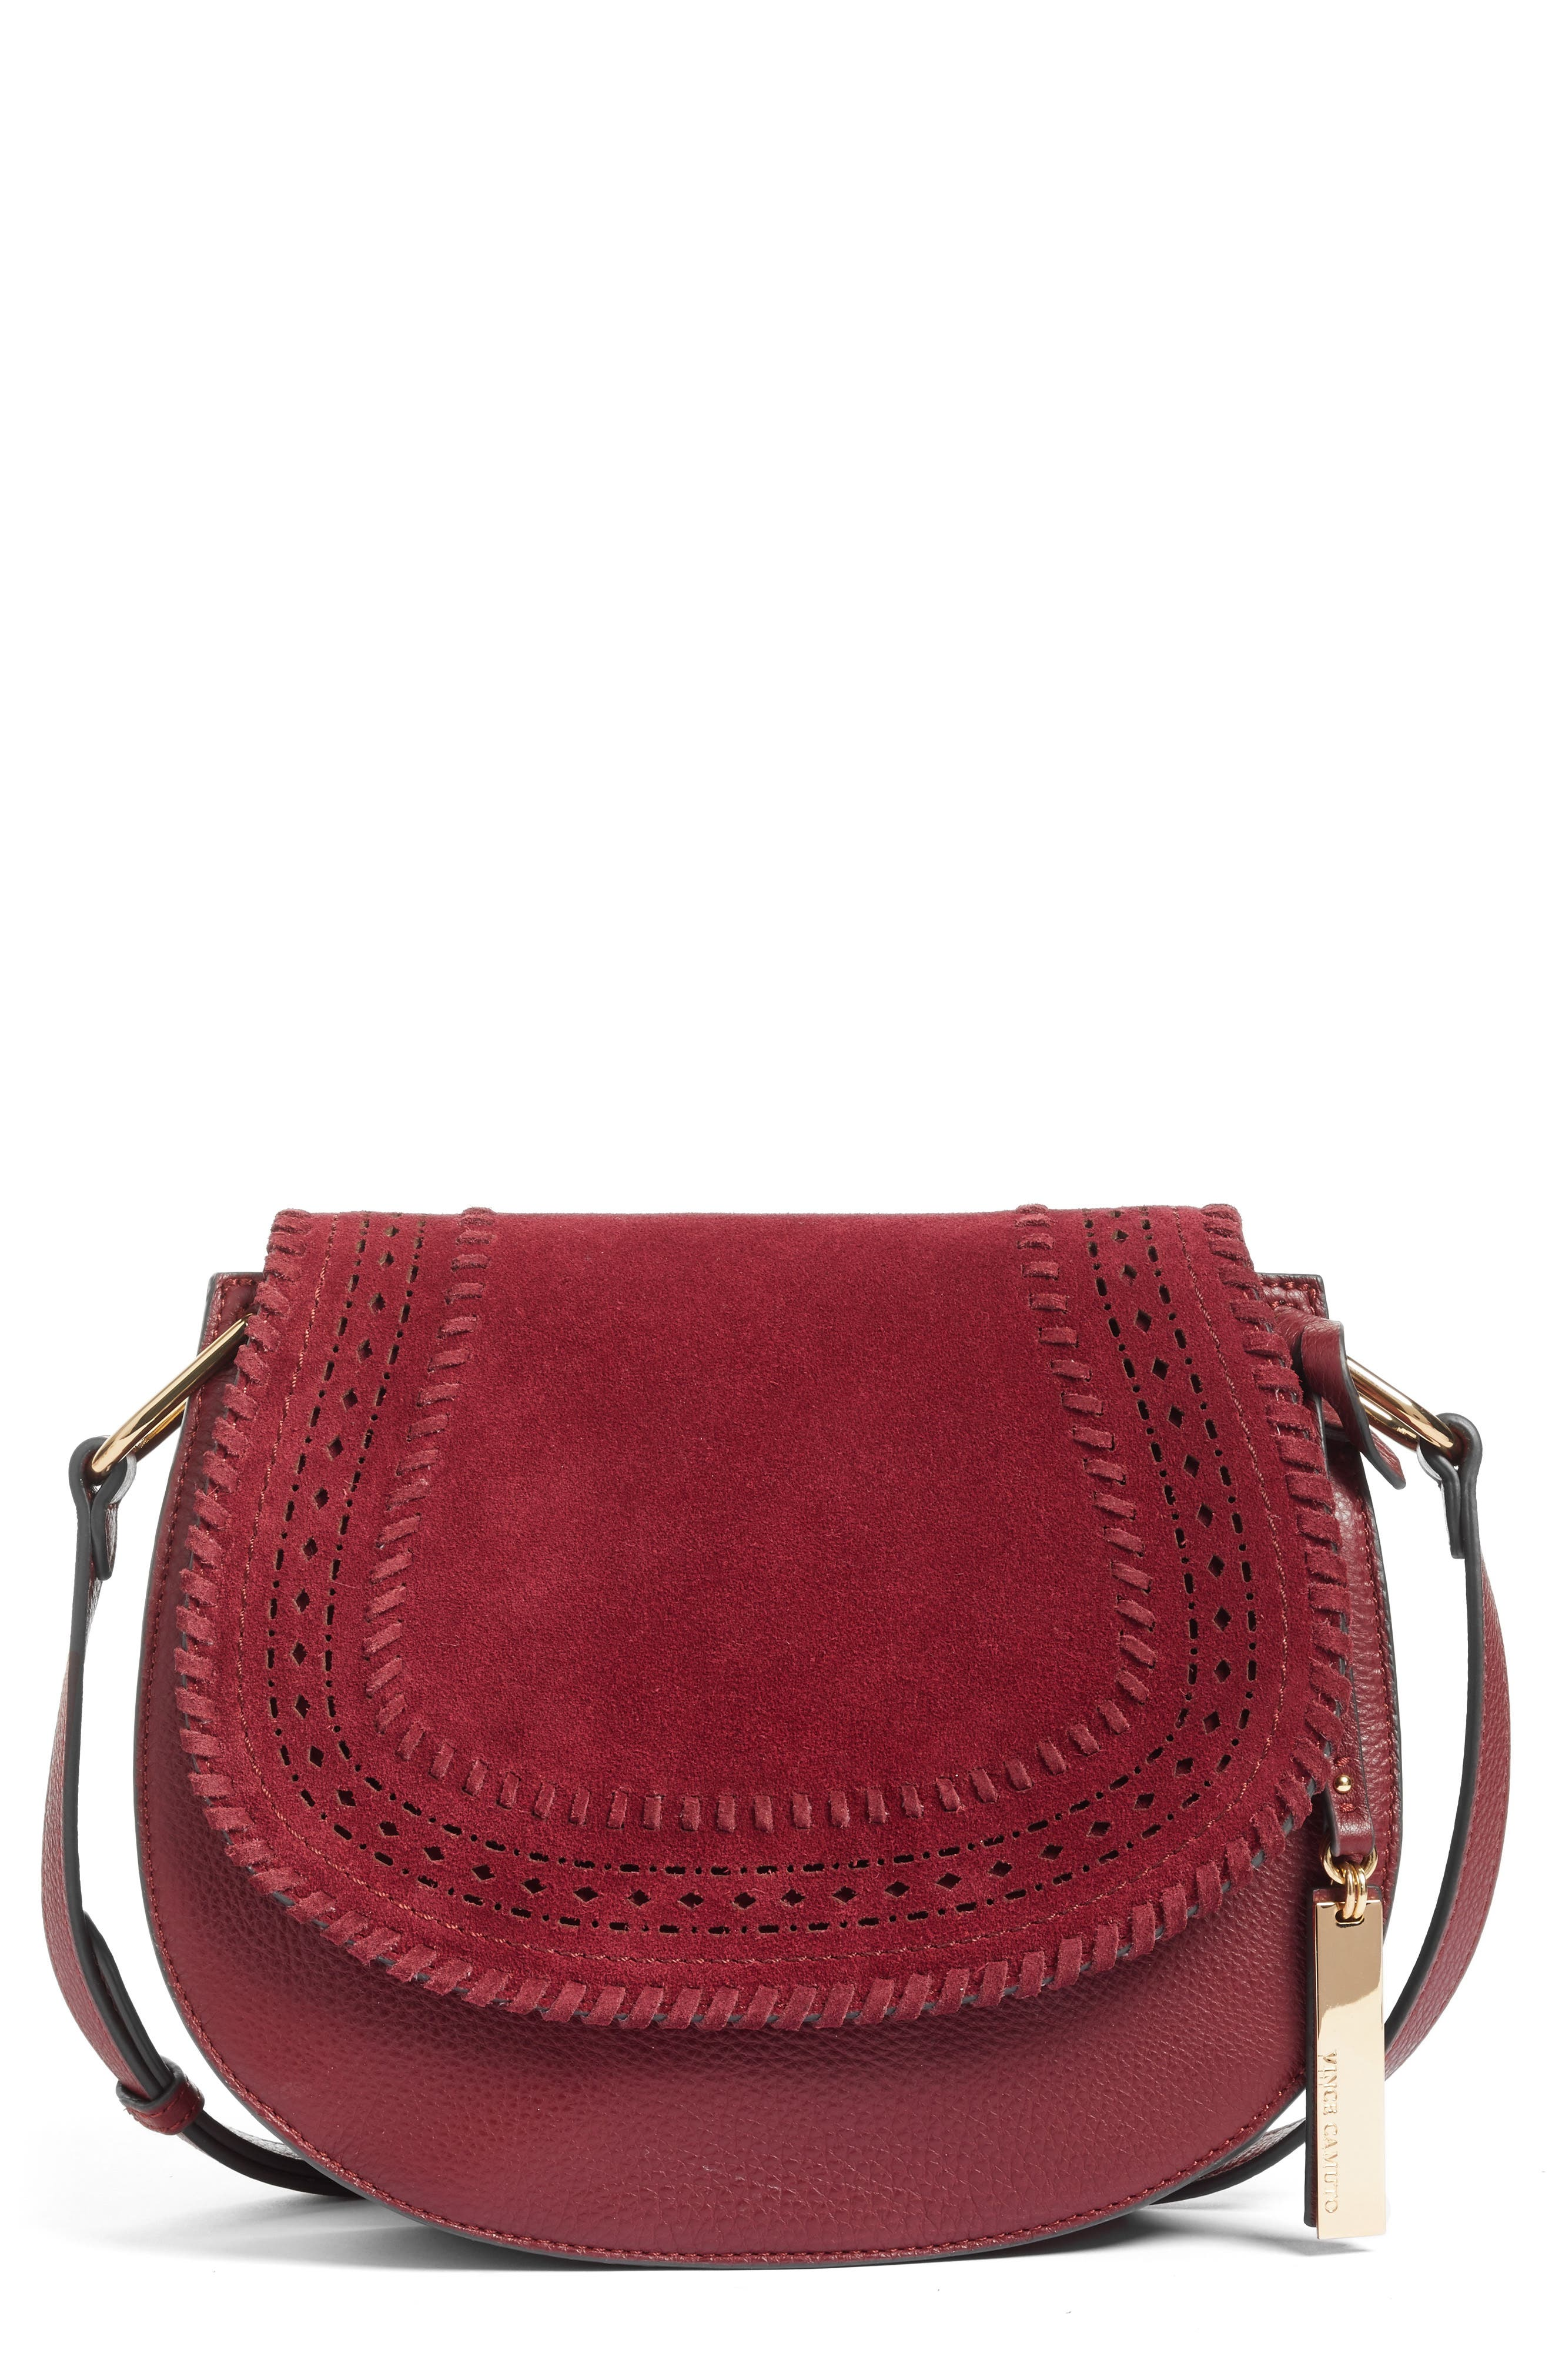 VINCE CAMUTO Kirie Suede & Leather Crossbody Saddle Bag